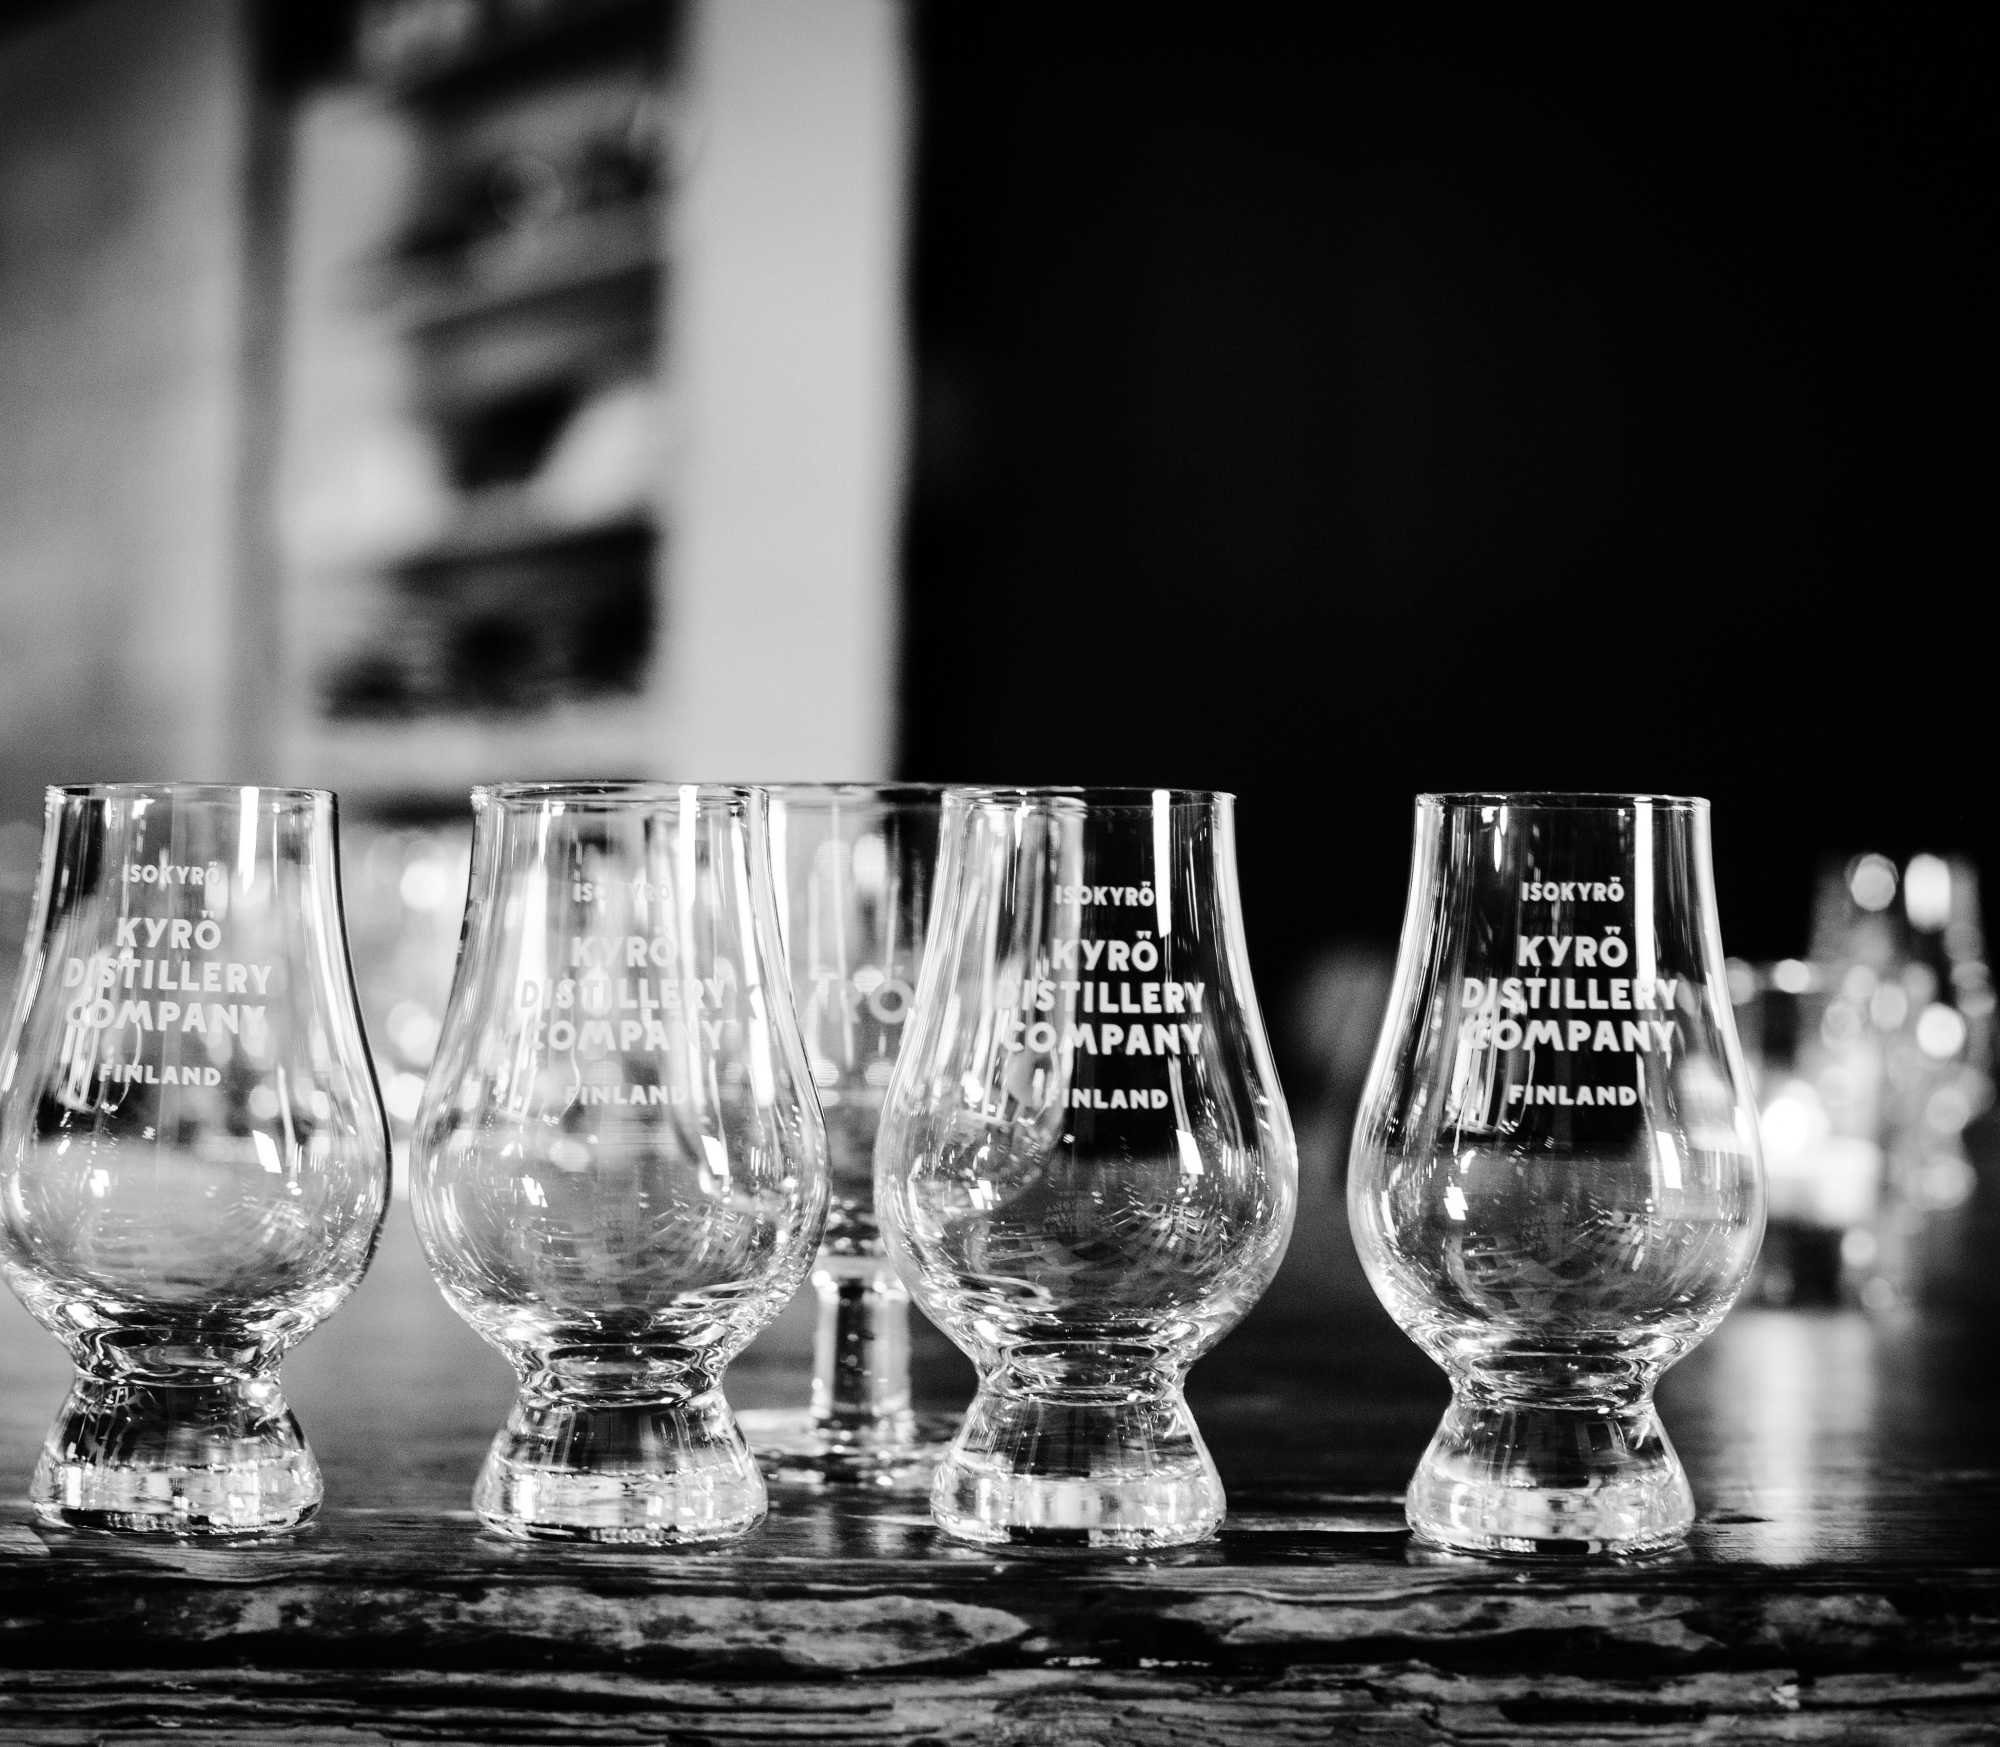 Empty Glencairn tasting glasses with Kyrö Distillery logo